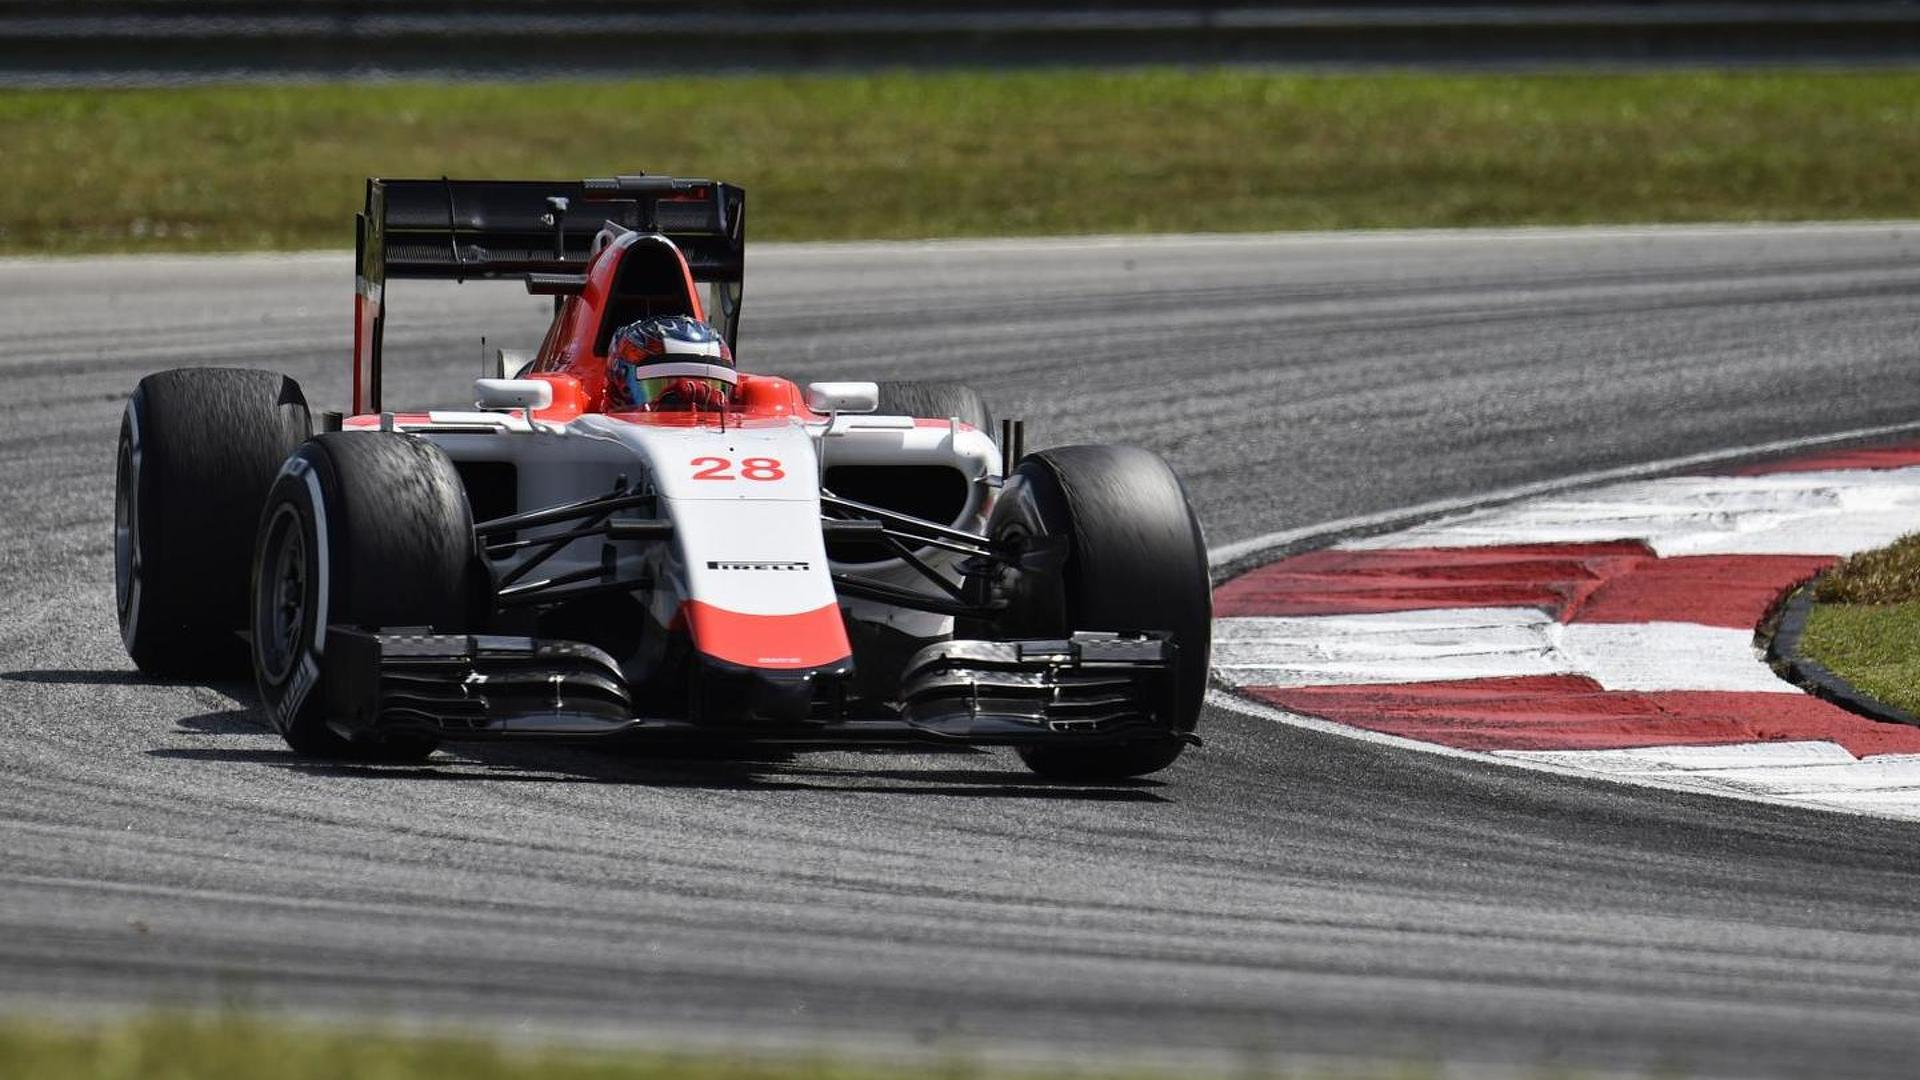 Next hurdle for Manor is 107pc qualifying rule